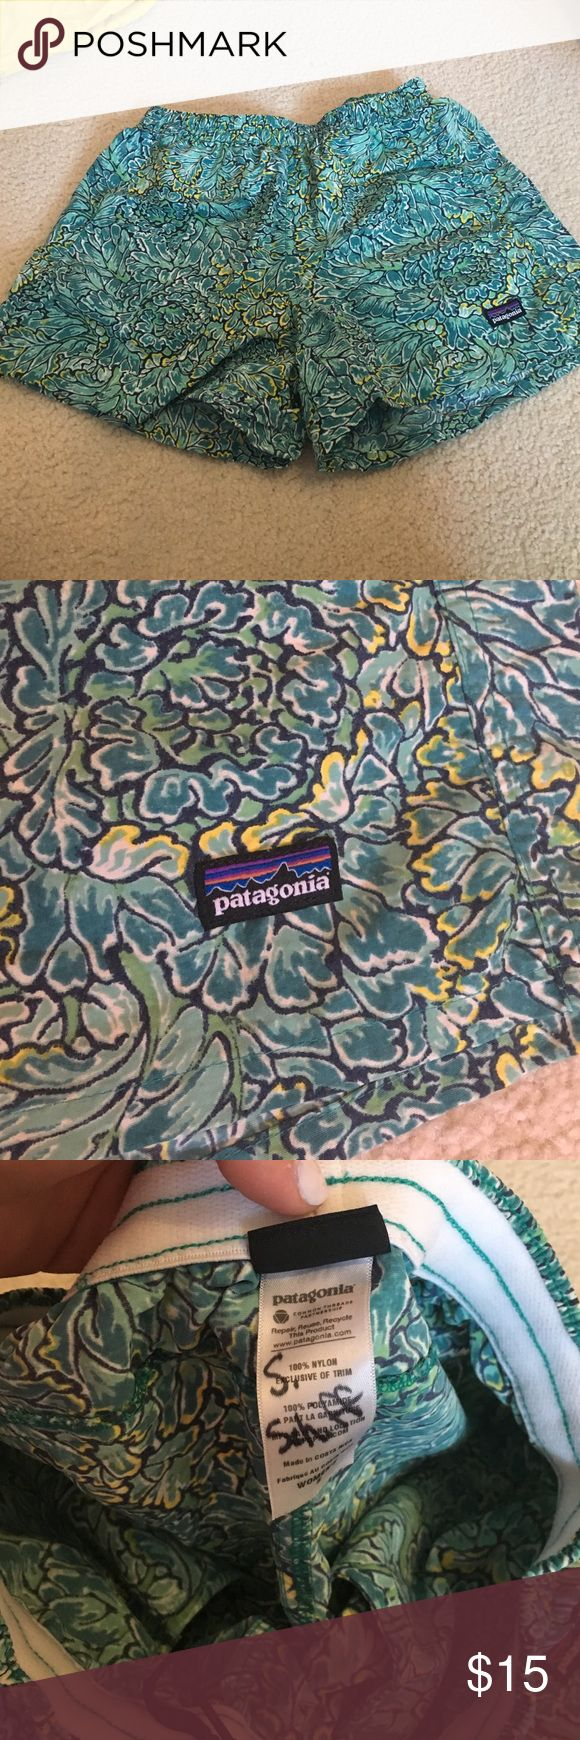 PATAGONIA SHORTS Baggies are back!! Great condition but do have my name written in the tag. Minimal wear and so comfortable Patagonia Shorts